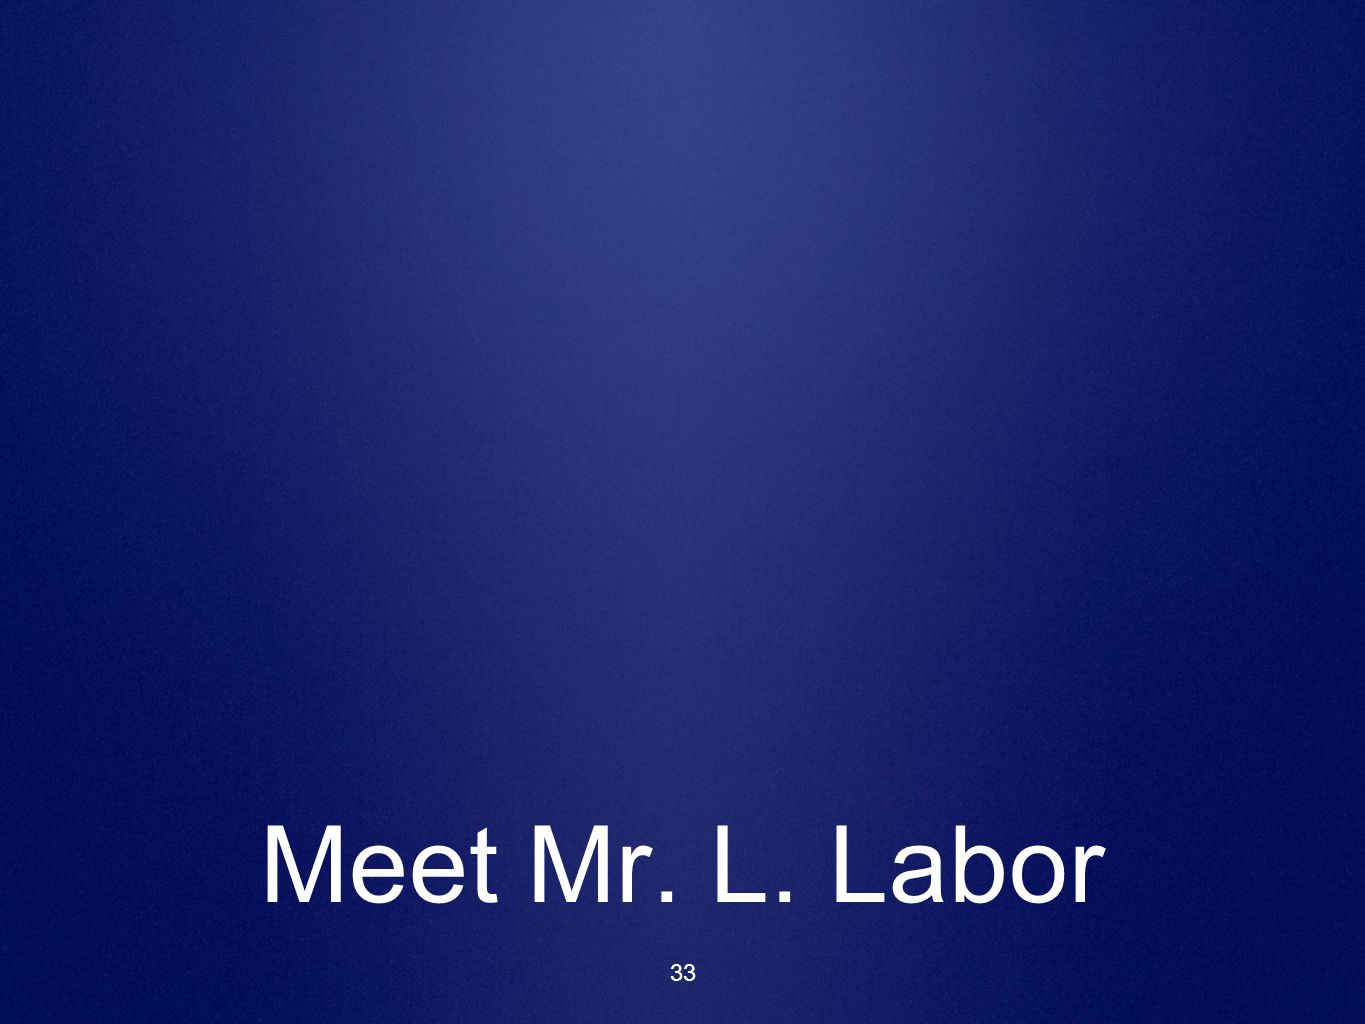 Meet Mr. L. Labor